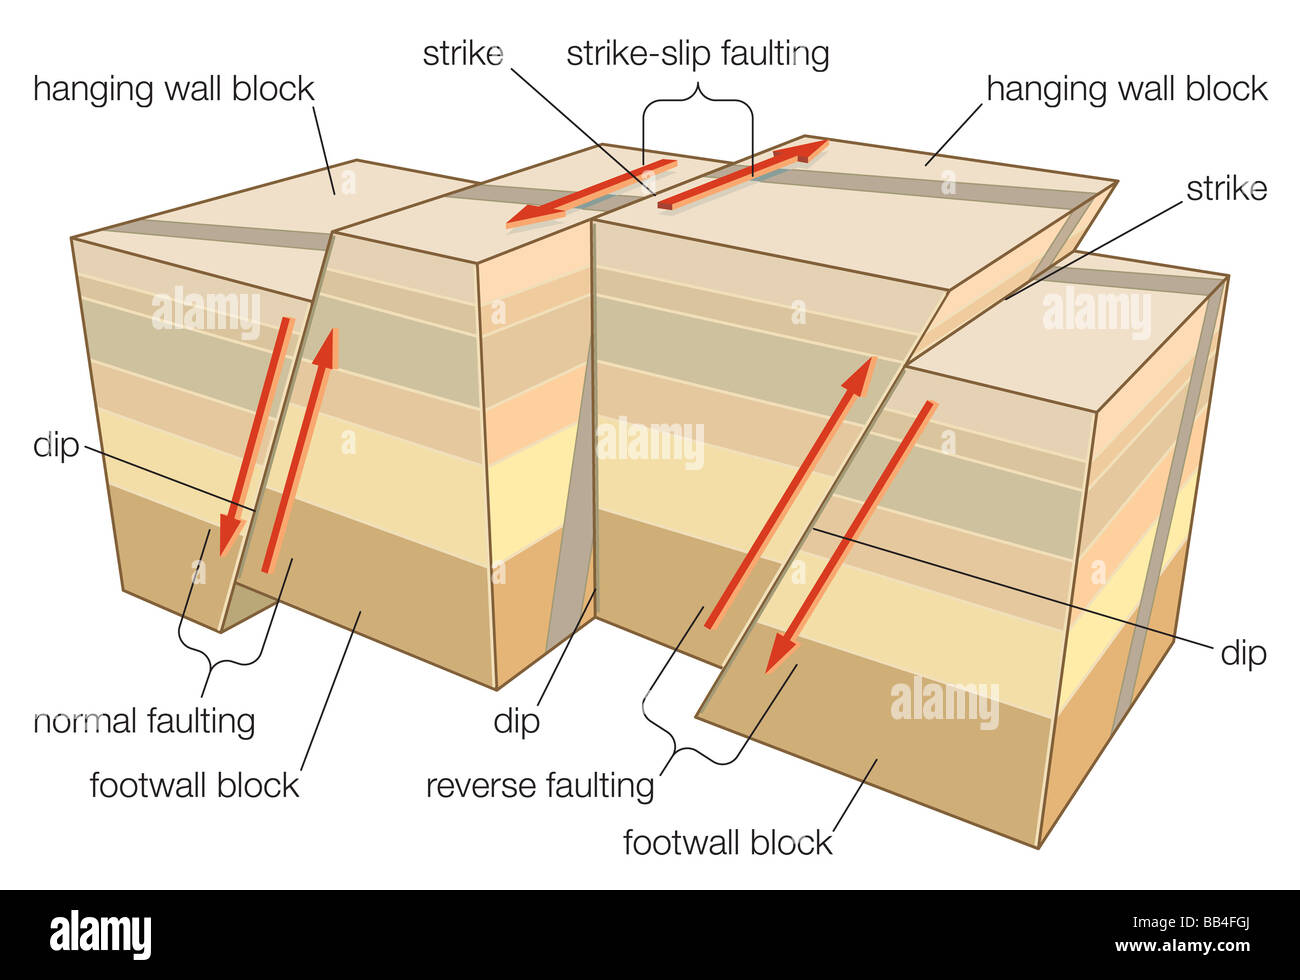 Types Of Faulting In Tectonic Earthquakes Stock Photo